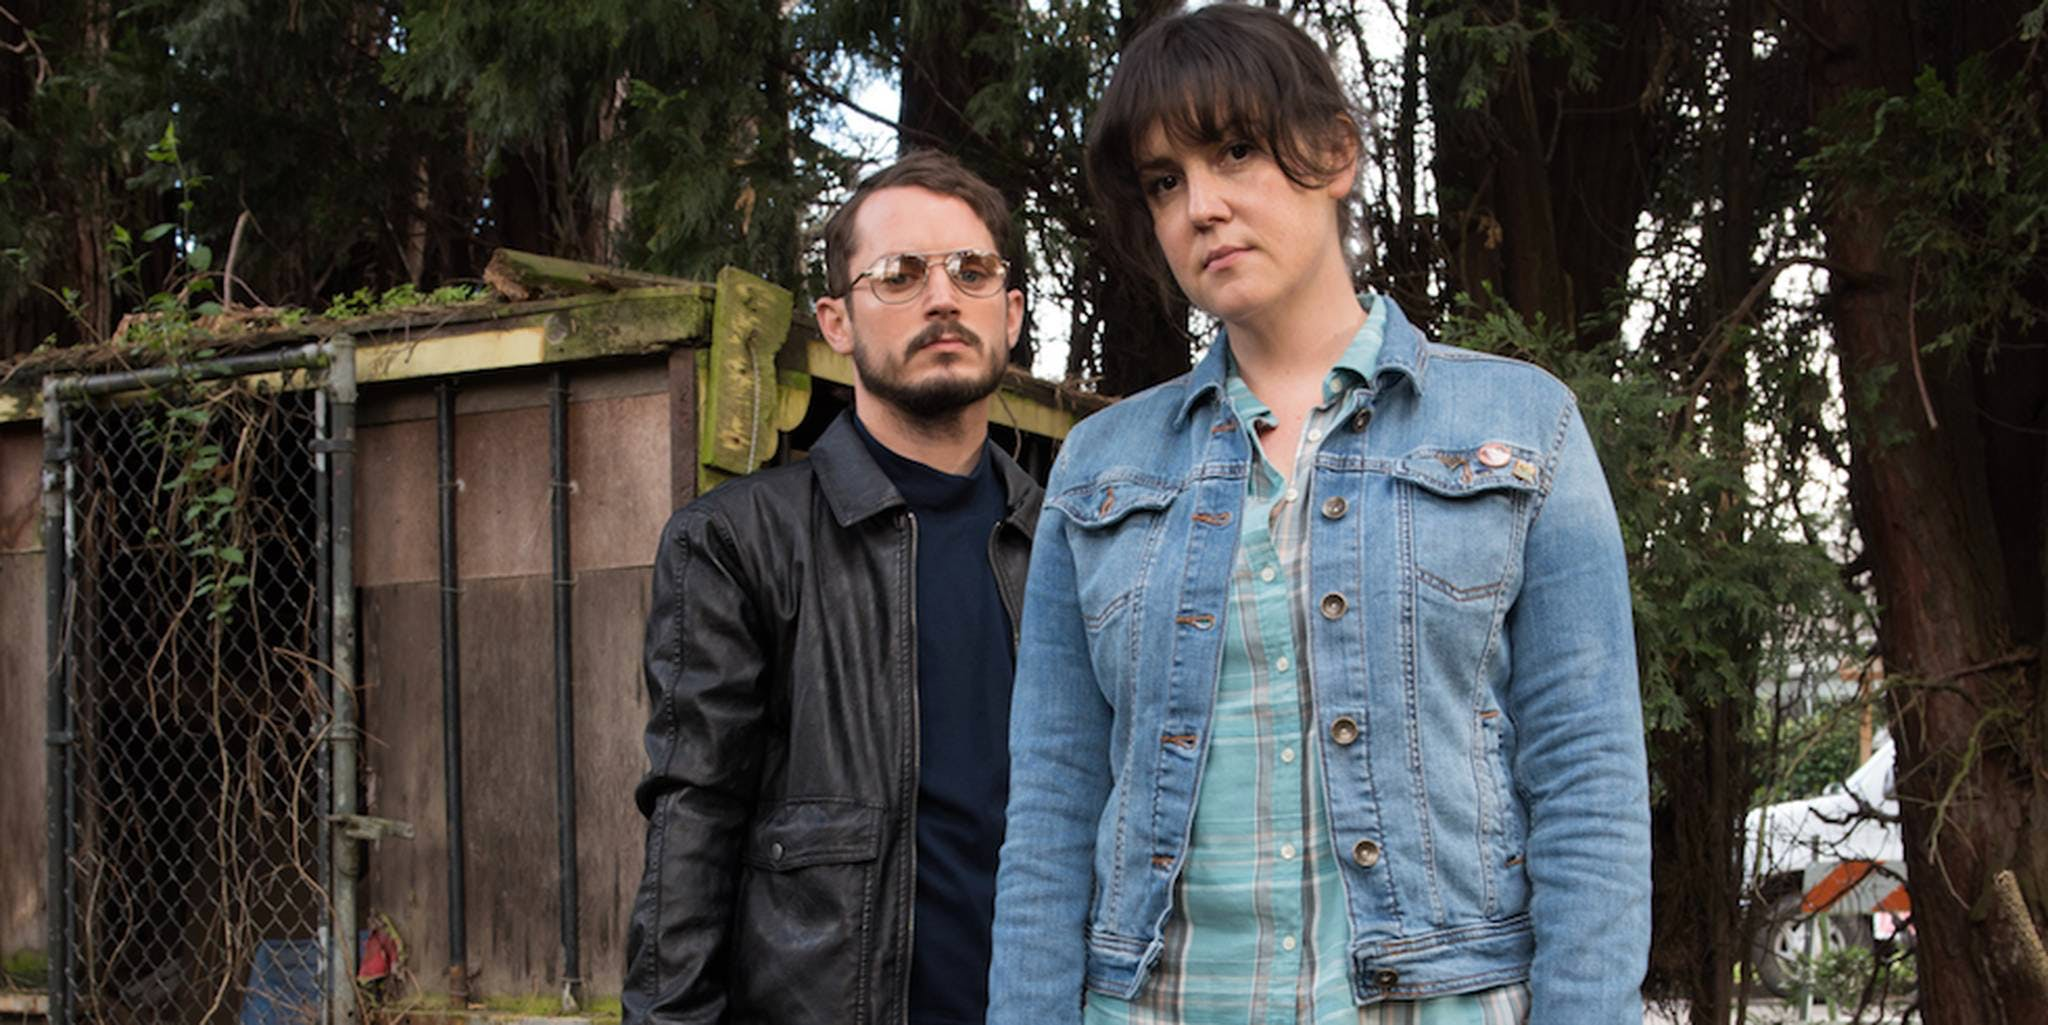 best comedy movies and best thrillers on netflix: I Don't Feel at Home in This World Anymore